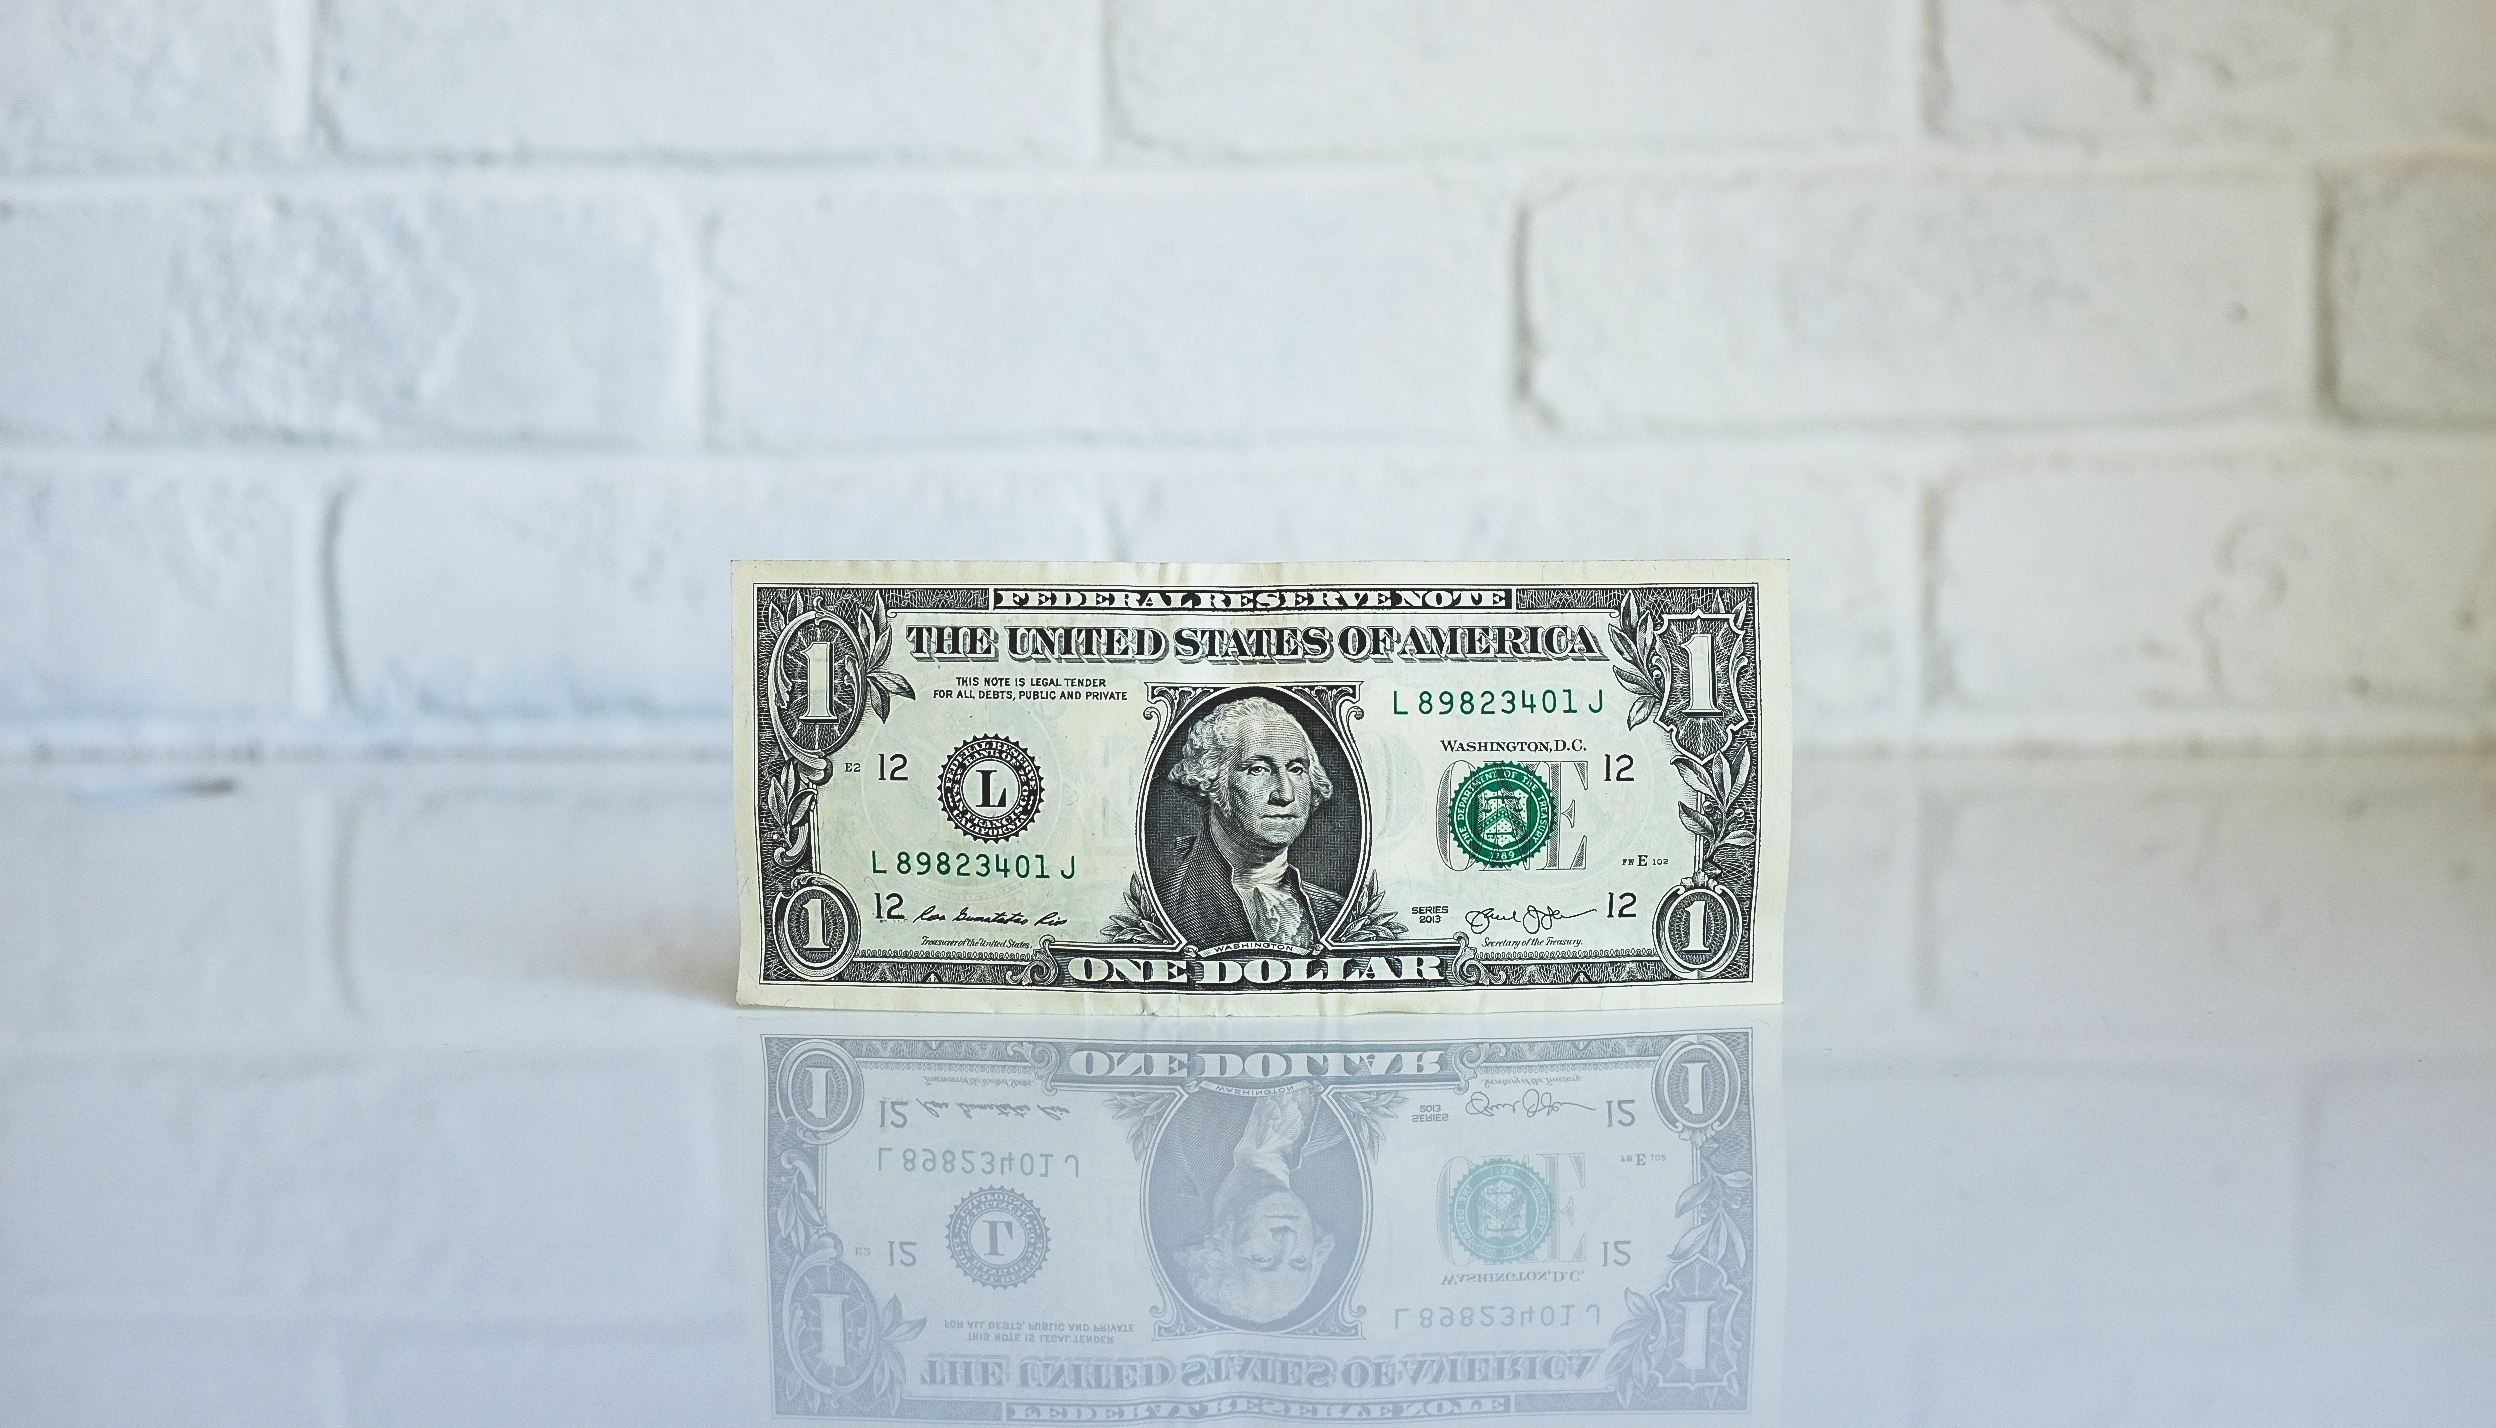 dollar bill- by neonbrand from unsplash